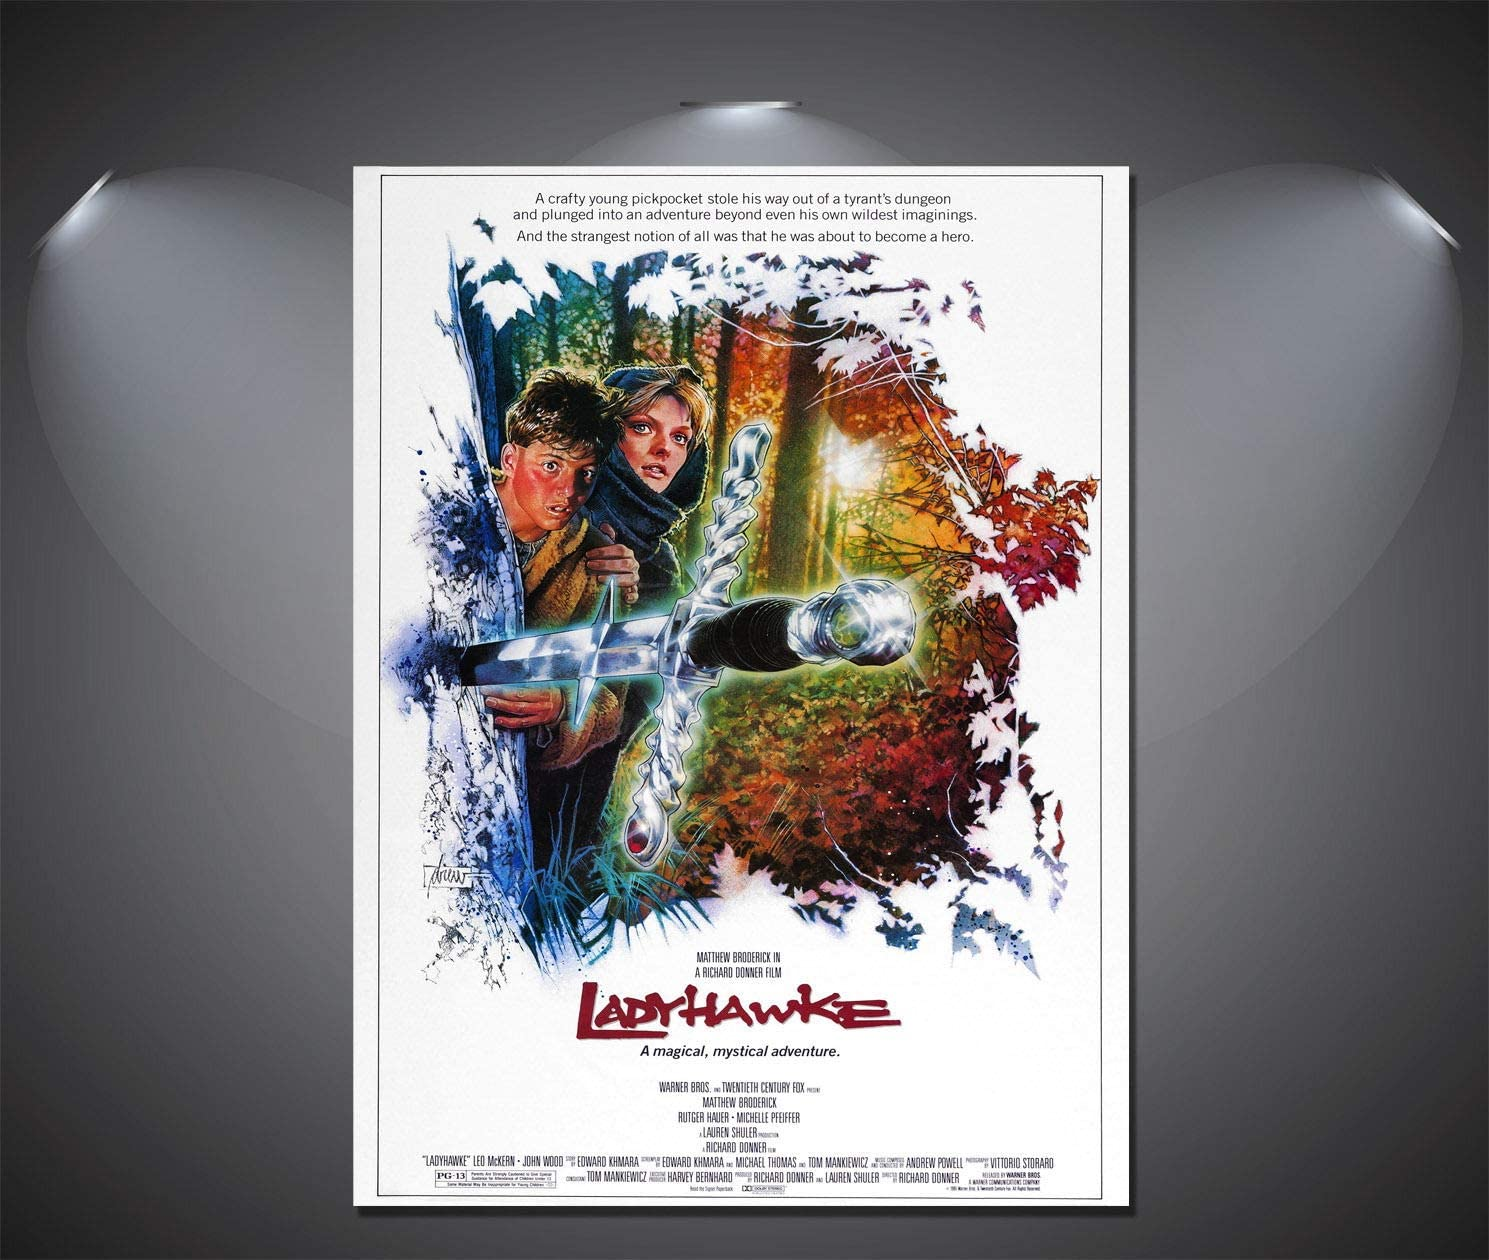 SAVA 147246 Ladyhawke Vintage Movie Decor Wall 36x24 Poster Print